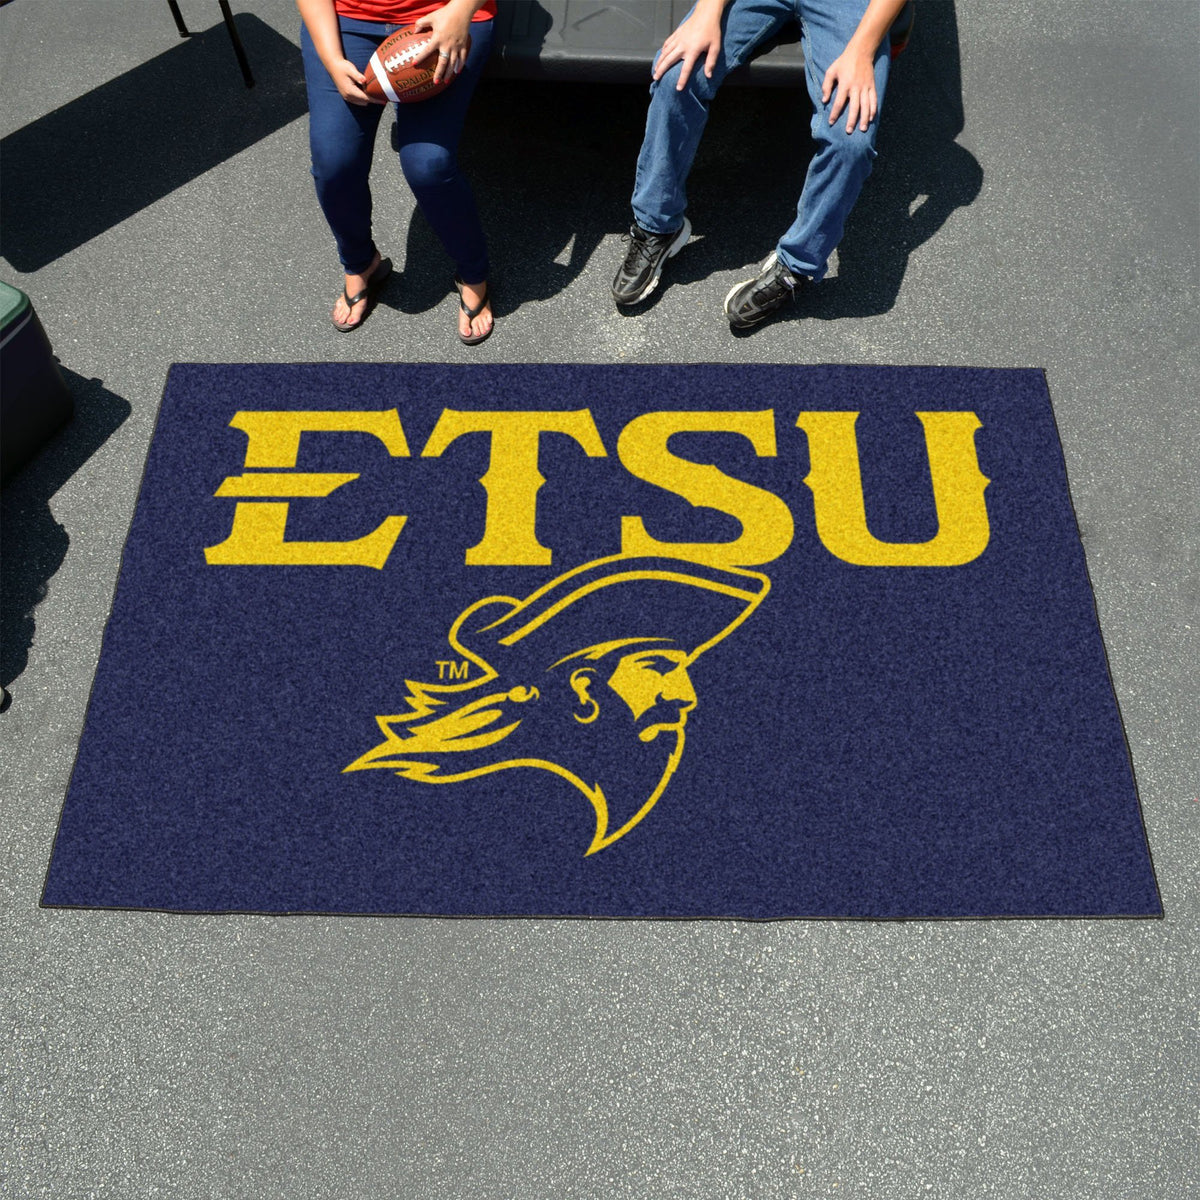 Collegiate - Ulti-Mat: A - L Collegiate Mats, Rectangular Mats, Ulti-Mat, Collegiate, Home Fan Mats East Tennessee